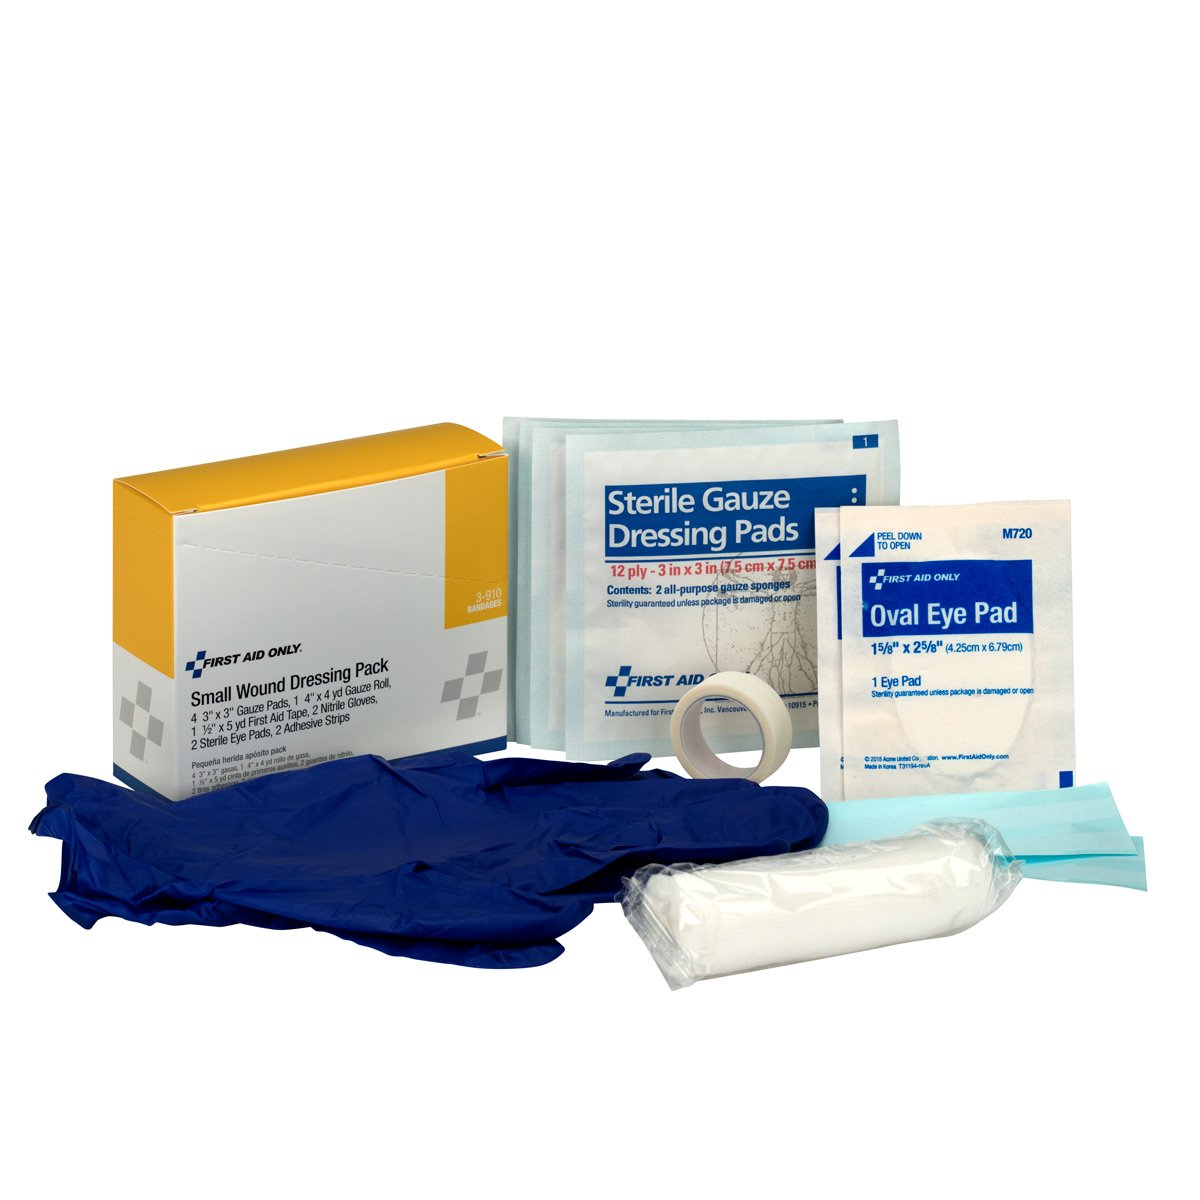 First Aid Only 3-910 8 Piece Small Wound Dressing Kit, For 10 Person First Aid Kits